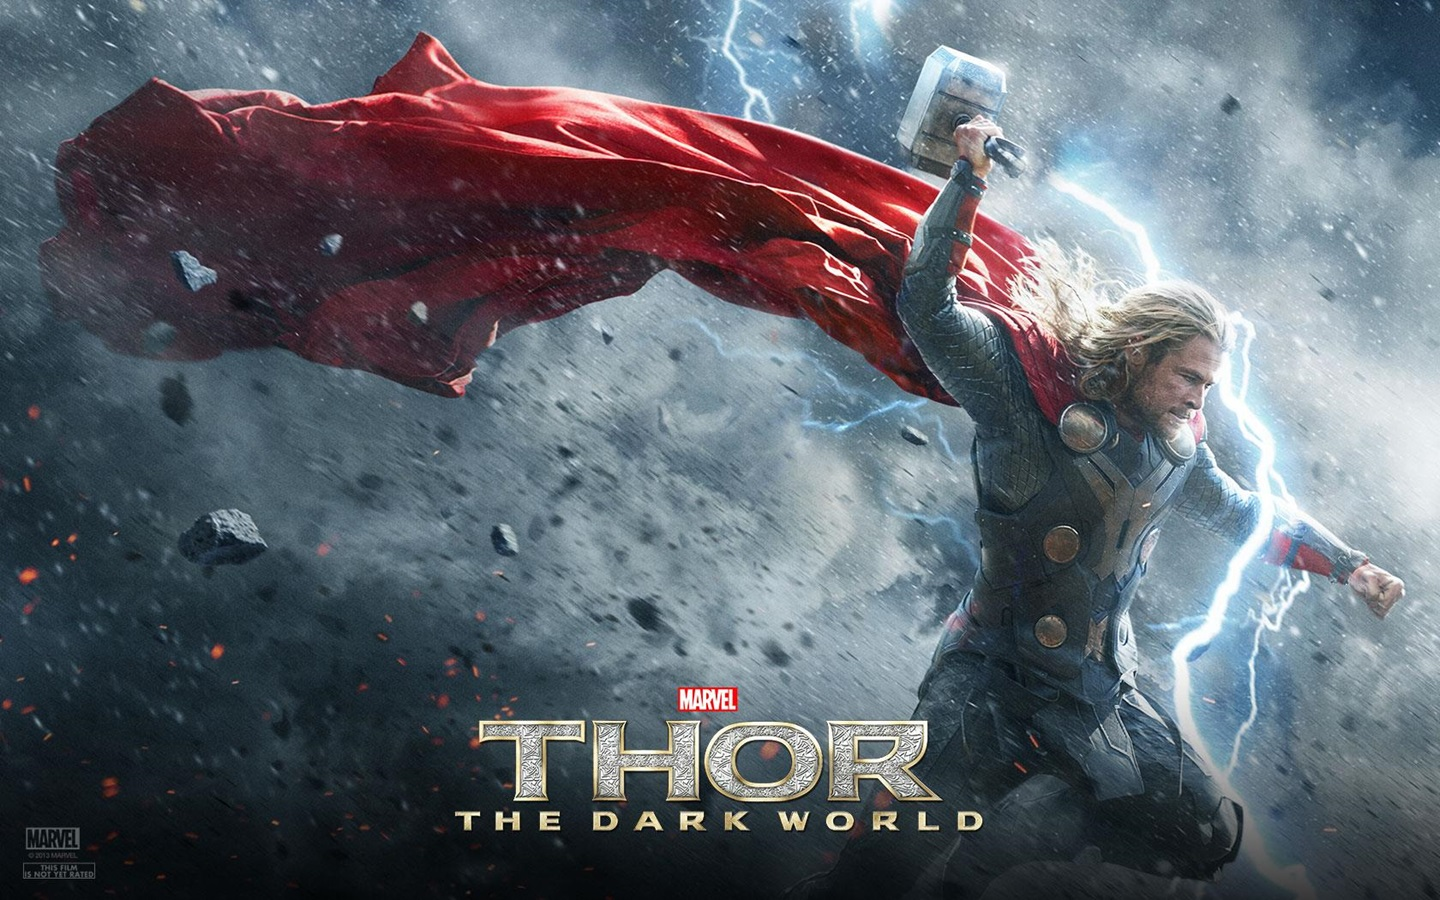 thor o mundo sombrio the dark world.wallpaper.papel de parede do thor.tor.tór